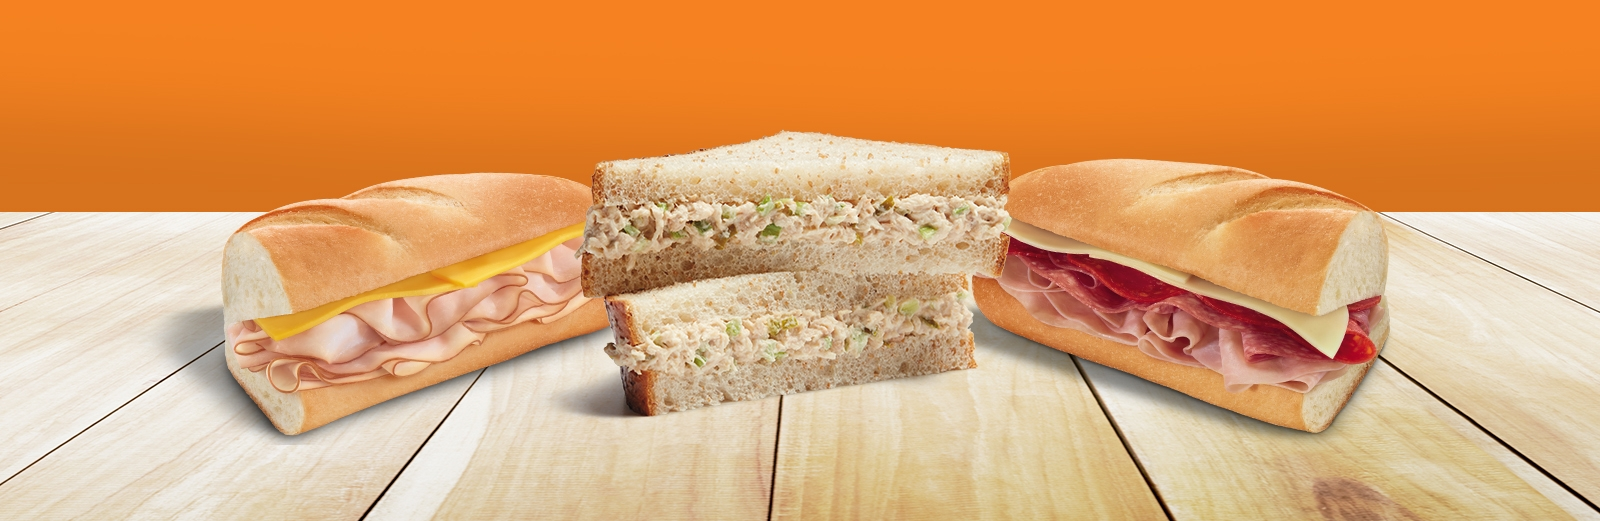 7-Eleven sandwiches featuring a turkey and cheese sub sandwich, an italian sub sandwich, and a tuna salad sandwich.